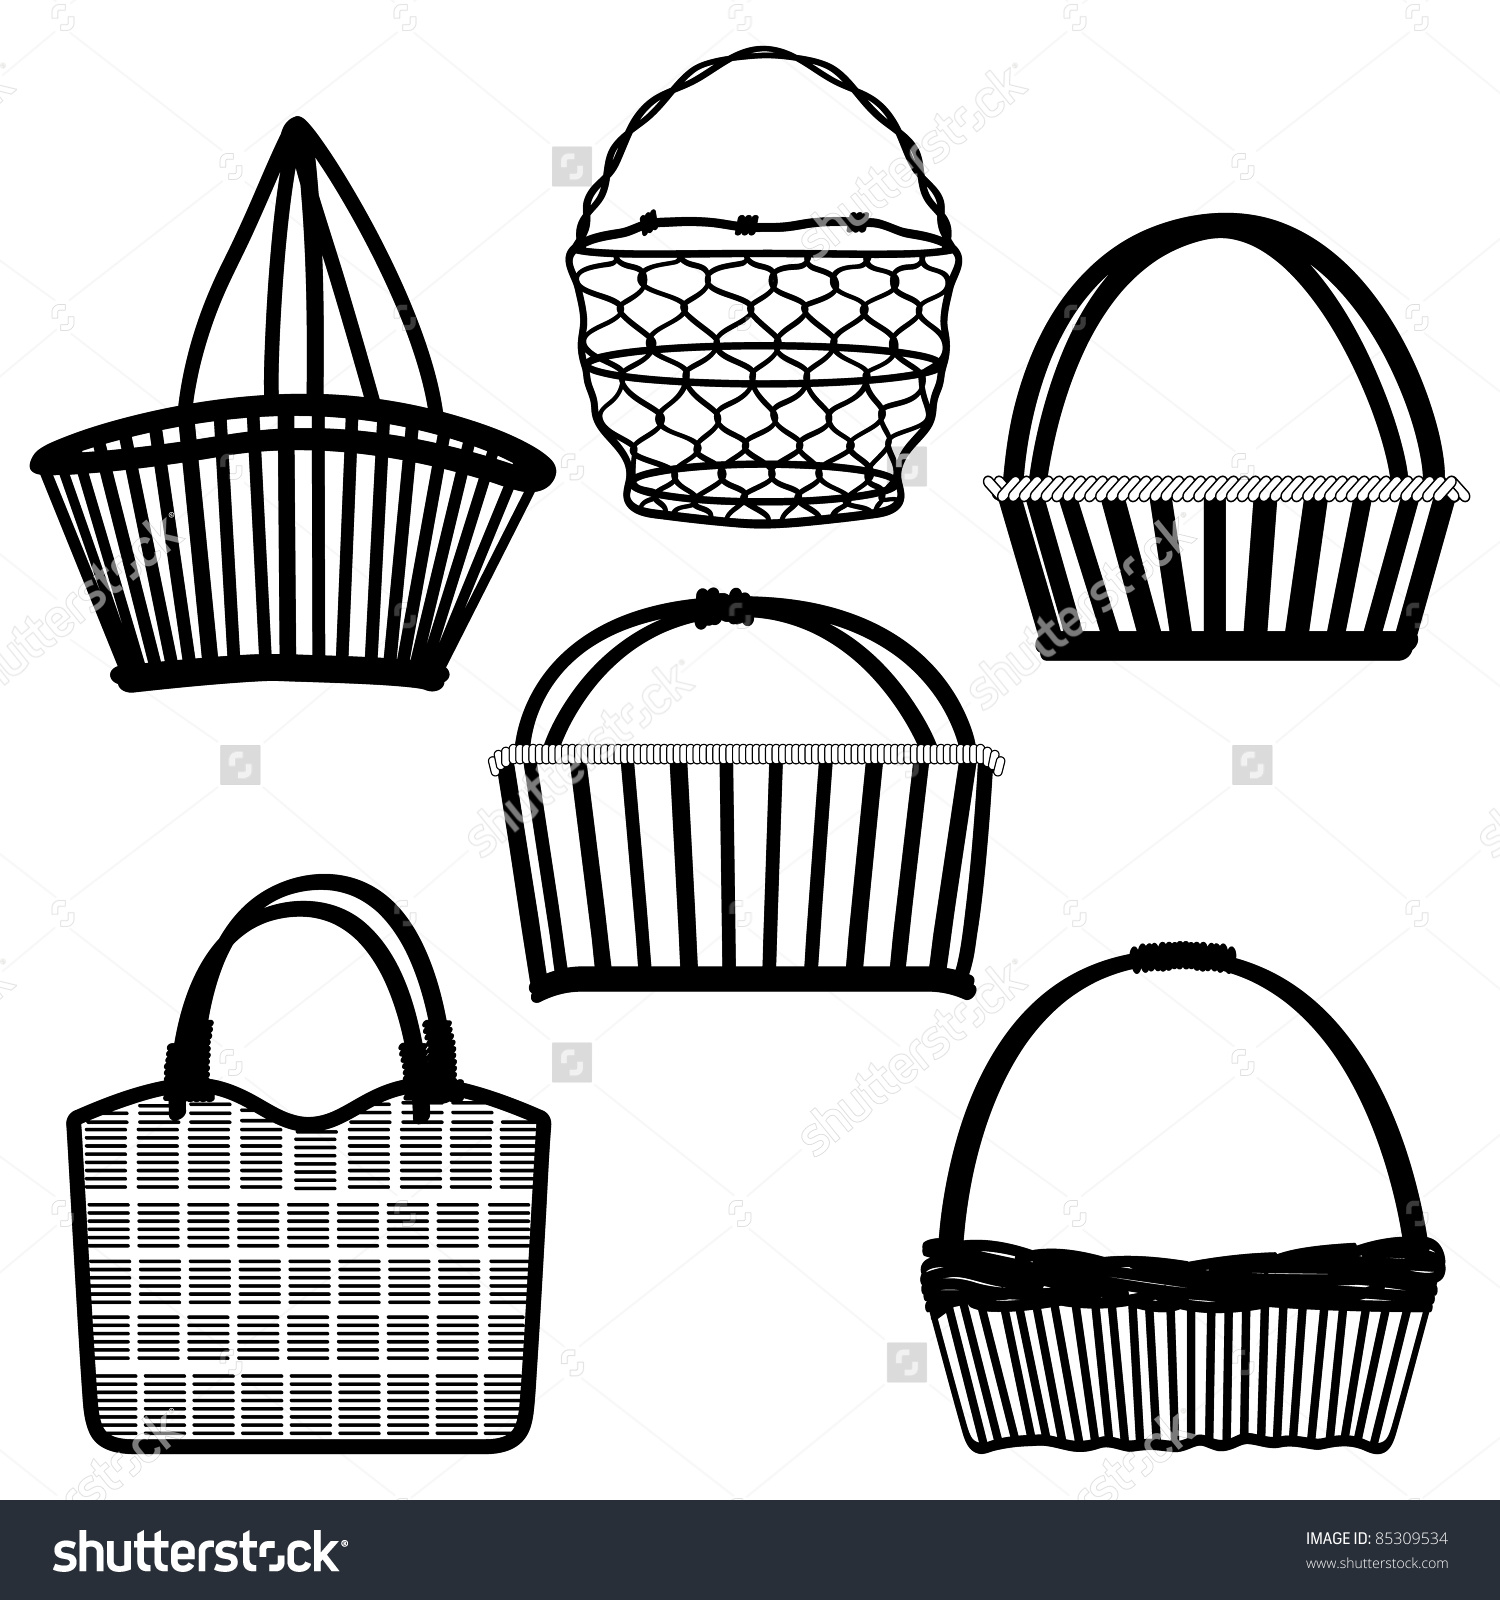 Basket Bag Container Wired Wooden Craft Stock Vector 85309534.